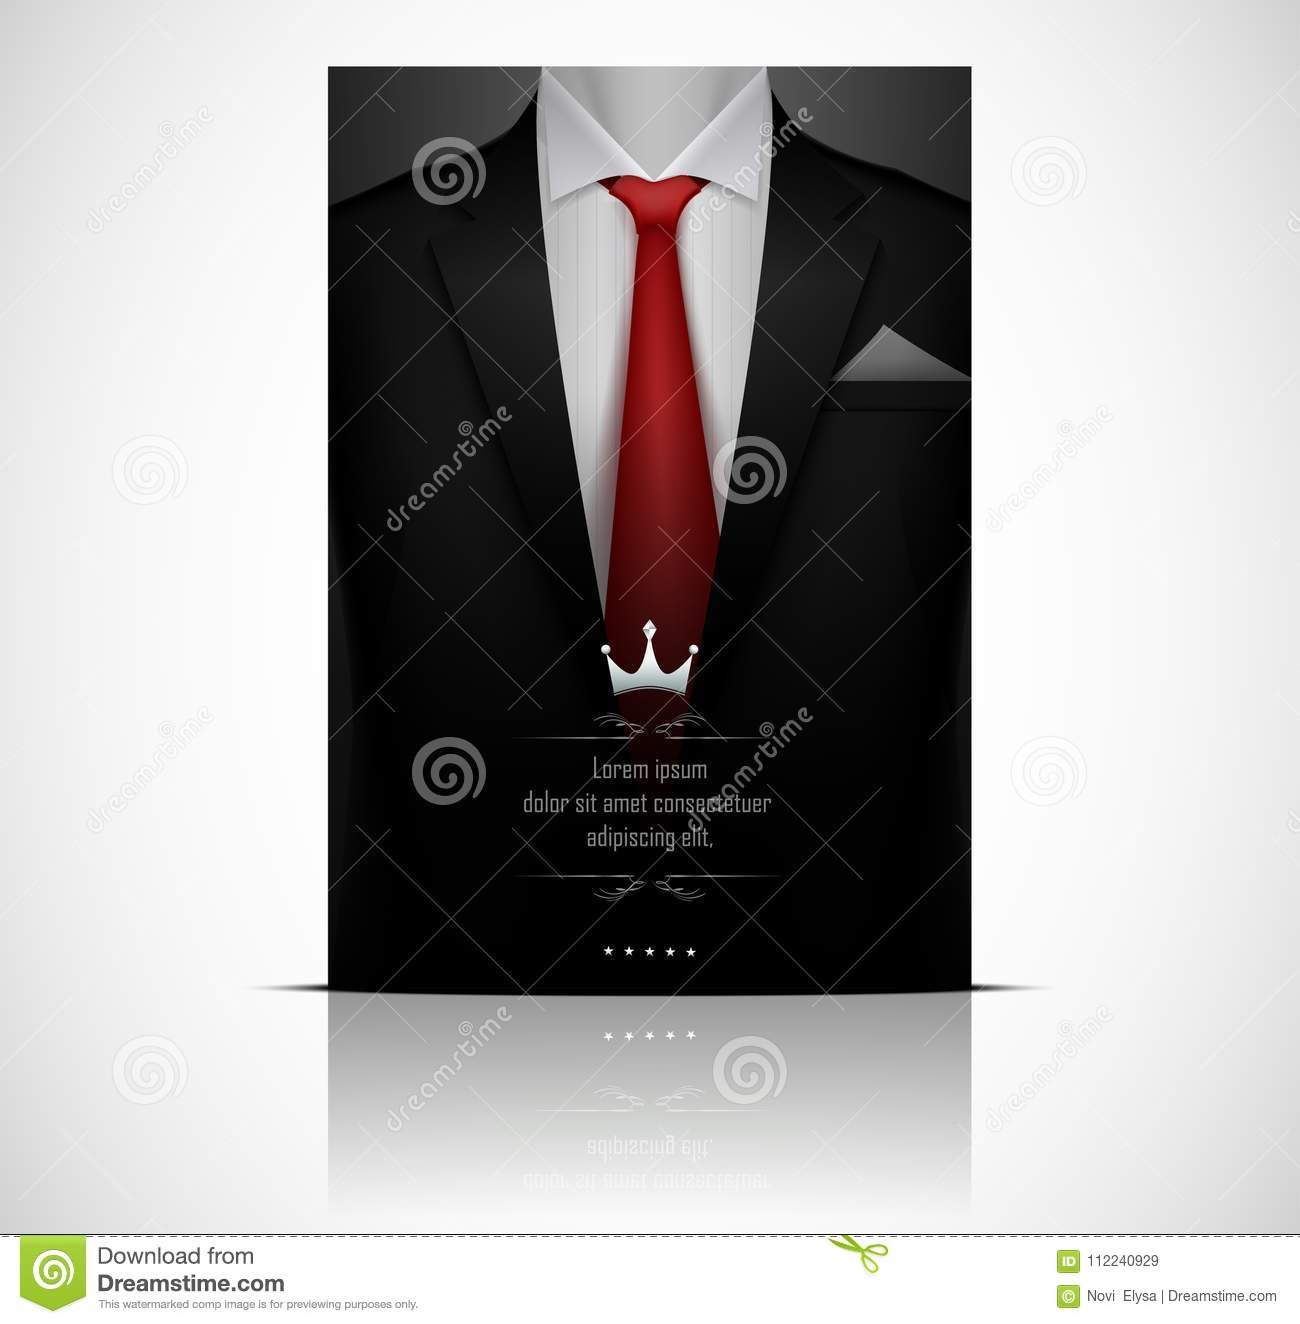 6c714fa336c9 Illustration of Black suit and tuxedo with red tie. More similar stock  illustrations